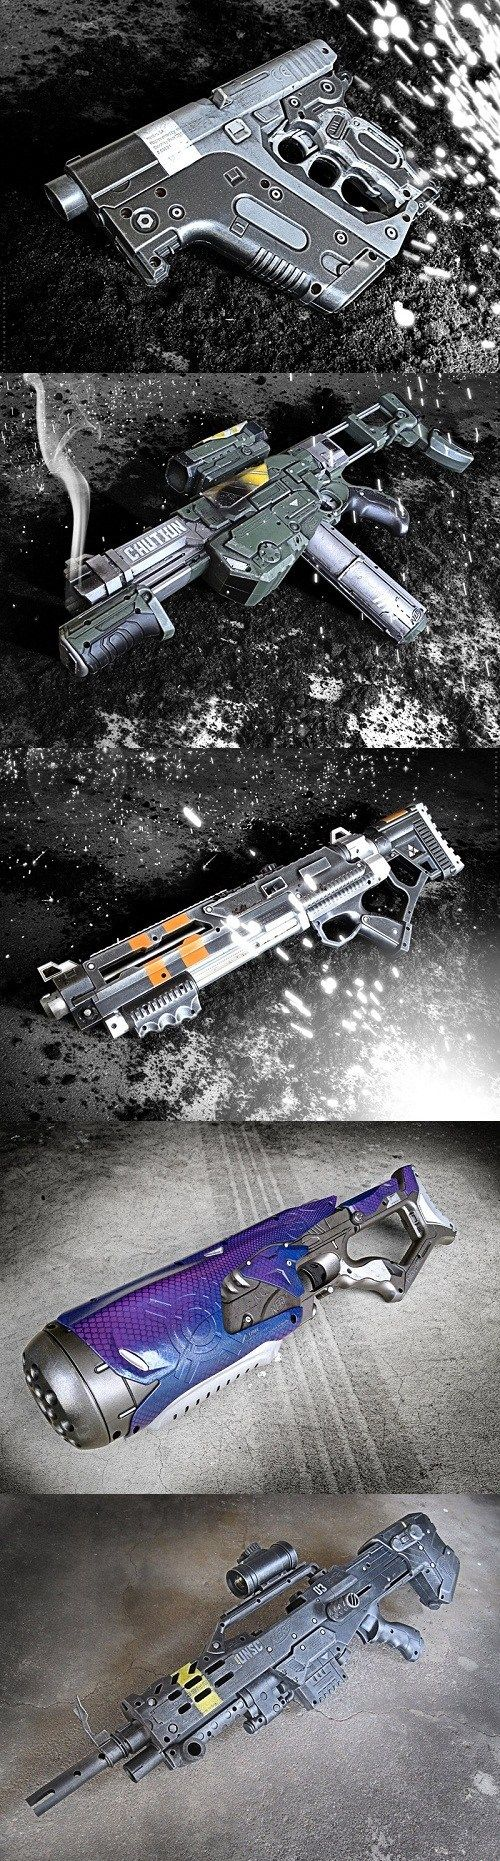 Halo Inspired Nerf Guns. Do I want these? Is like Schwarzenegger hard to spell? <- nice